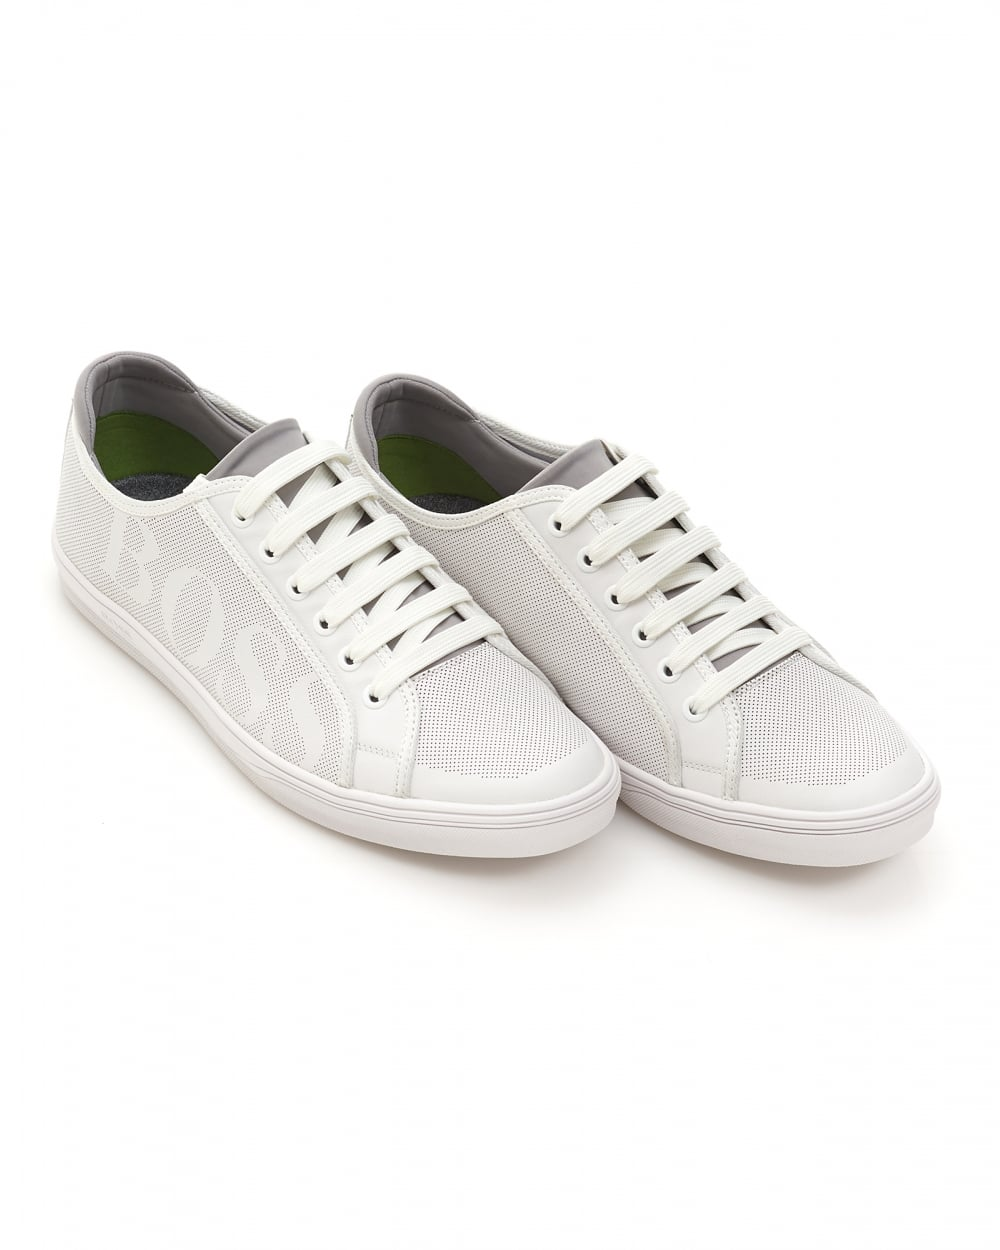 Mens Attitude Ten Trainers, Perforated Tonal Leather White Sneakers